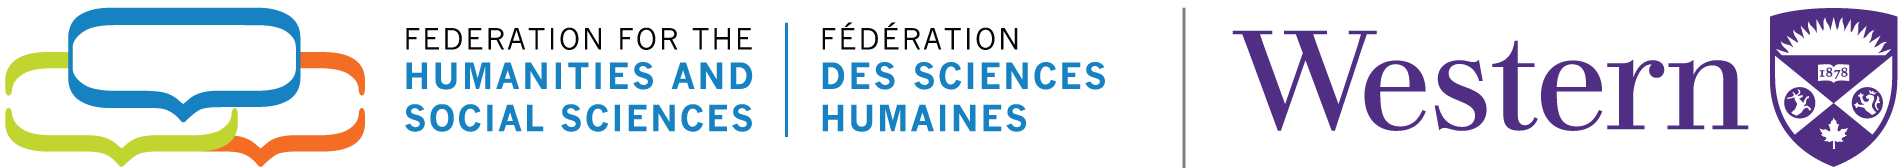 Federation for the Humanities and Social Sciences logo and Western University logo